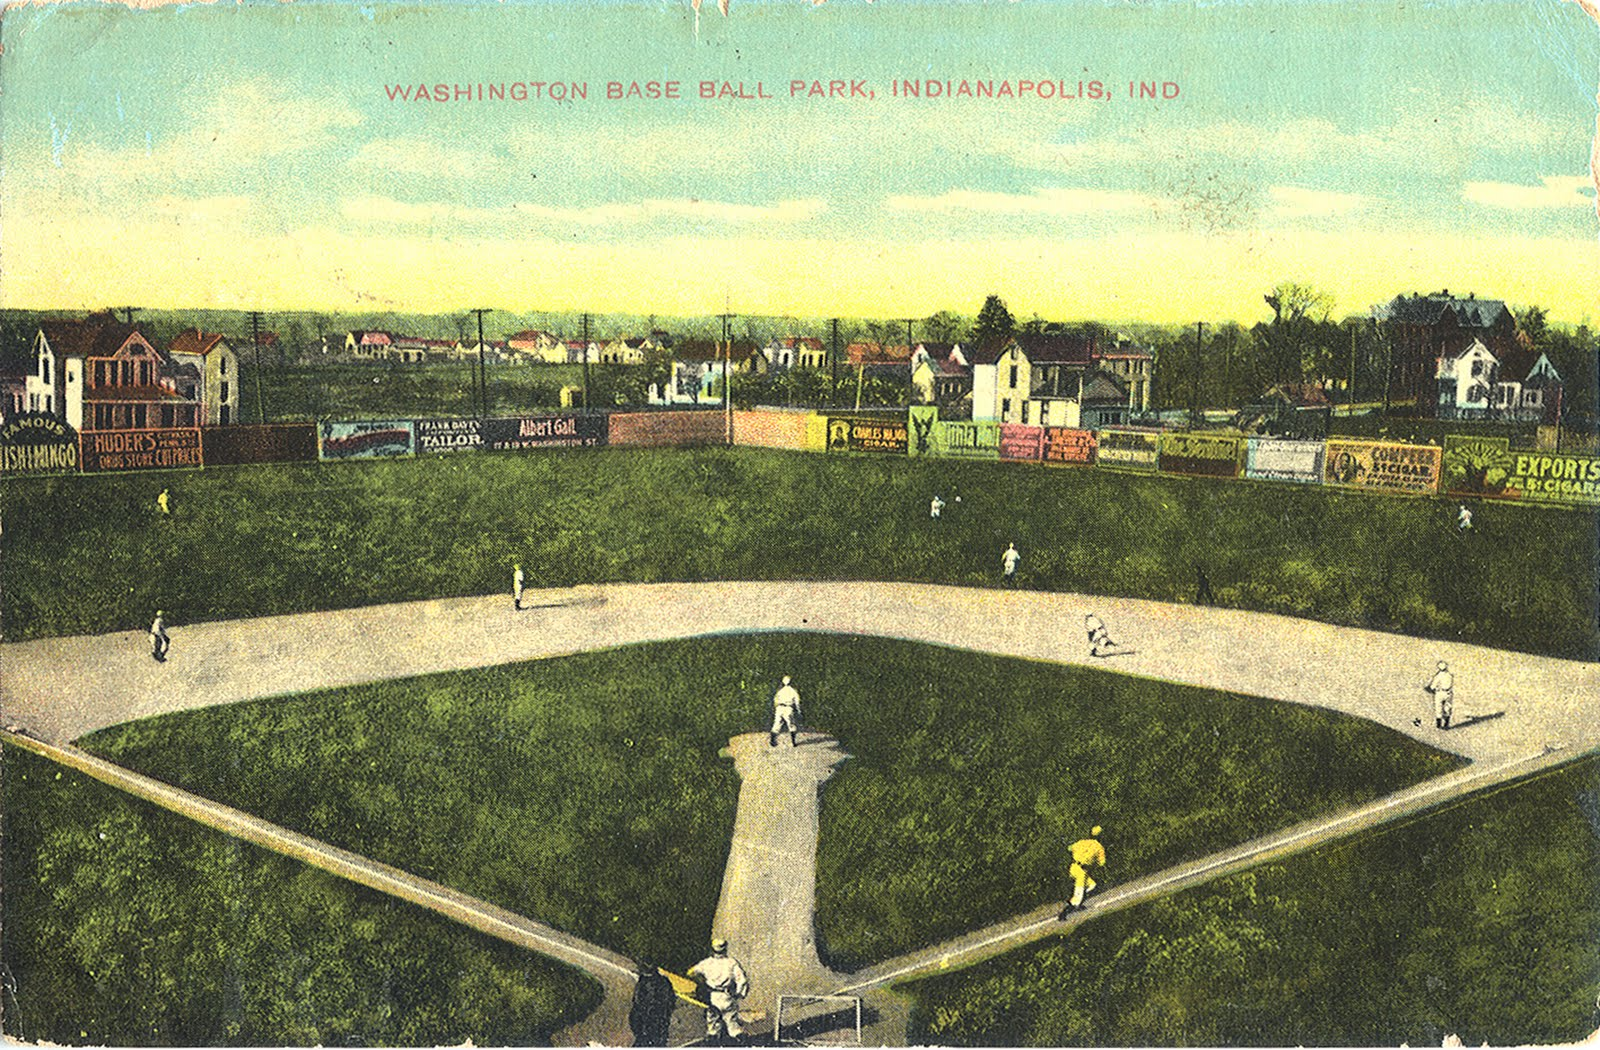 The original Washington Baseball Park as depicted on a postcard in the possession of Rex Hamann. The park was in use from 1900-1905.